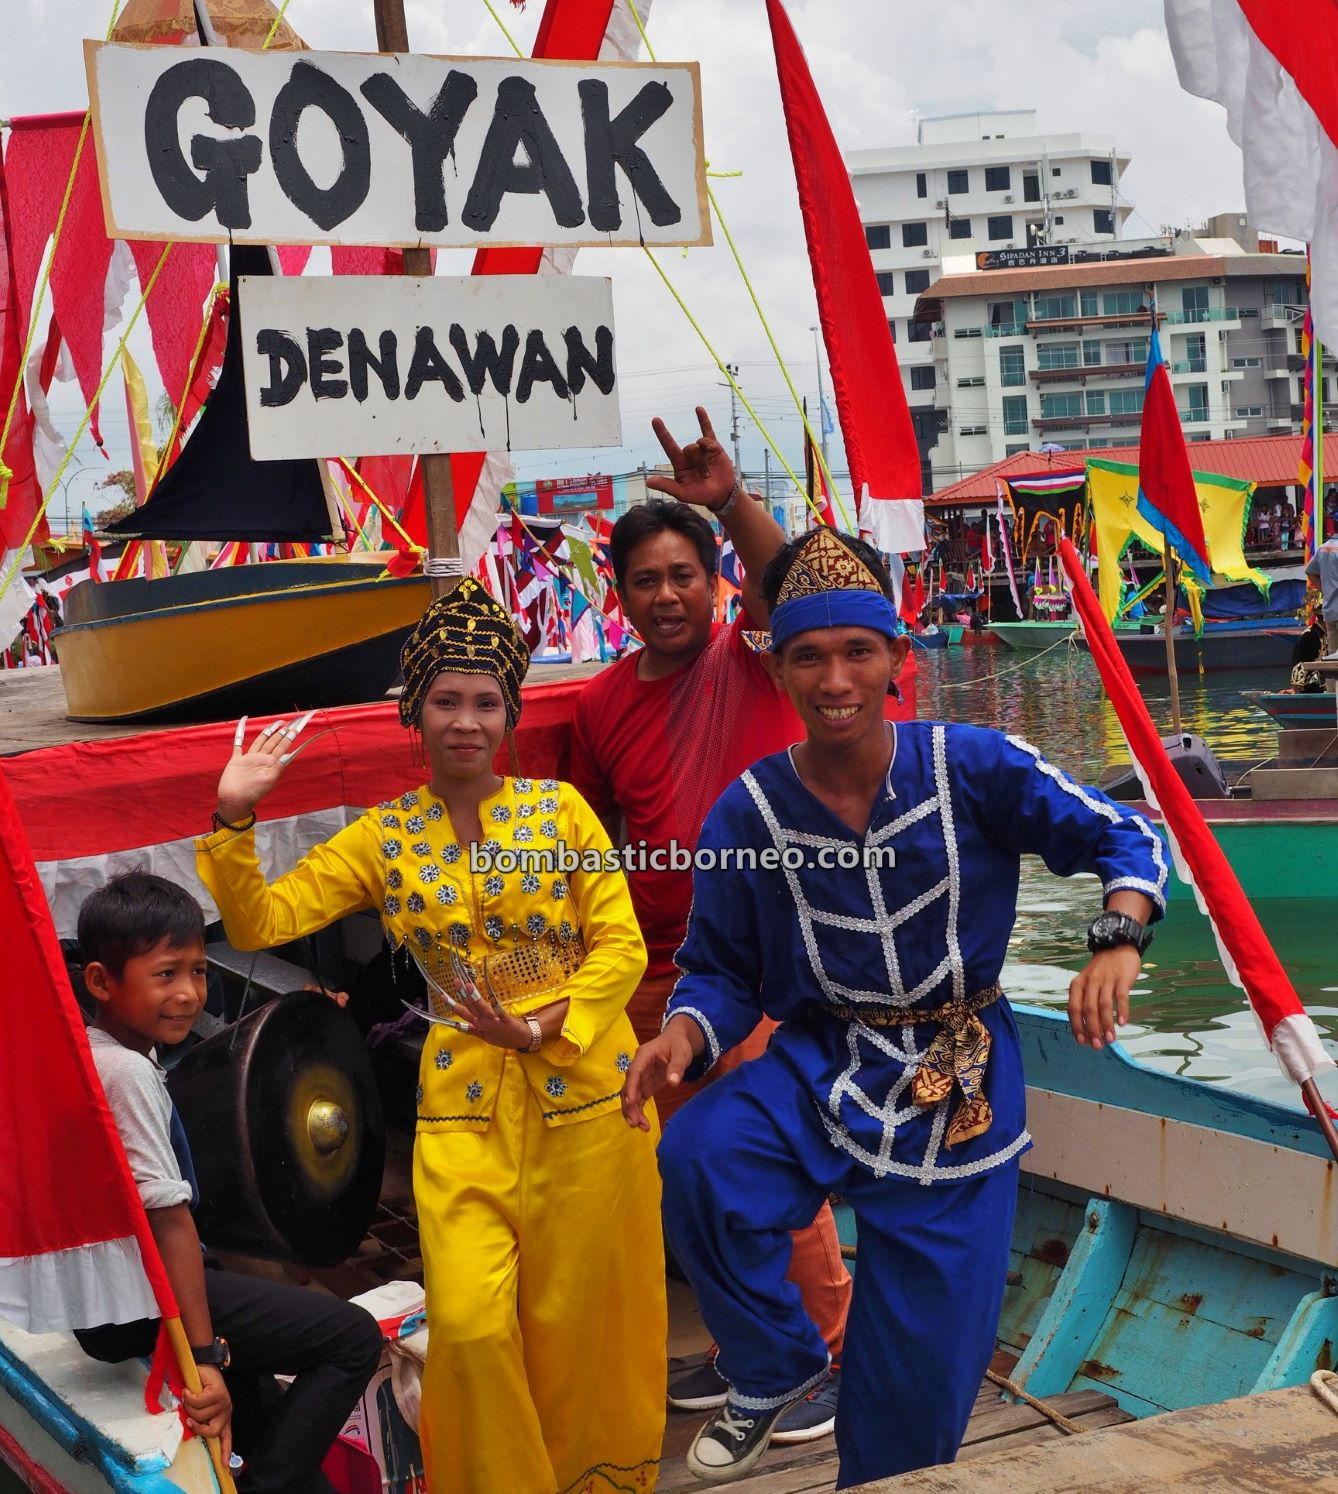 Water Festival, parade, Pesta Regatta Lepa, Sailing Boat, Sea Gypsies, ethnic, traditional, indigenous, Tawau, tourist attraction, travel guide, Borneo, 马来西亚旅游景点, 仙本那彩船节, 沙巴巴瑶民族文化